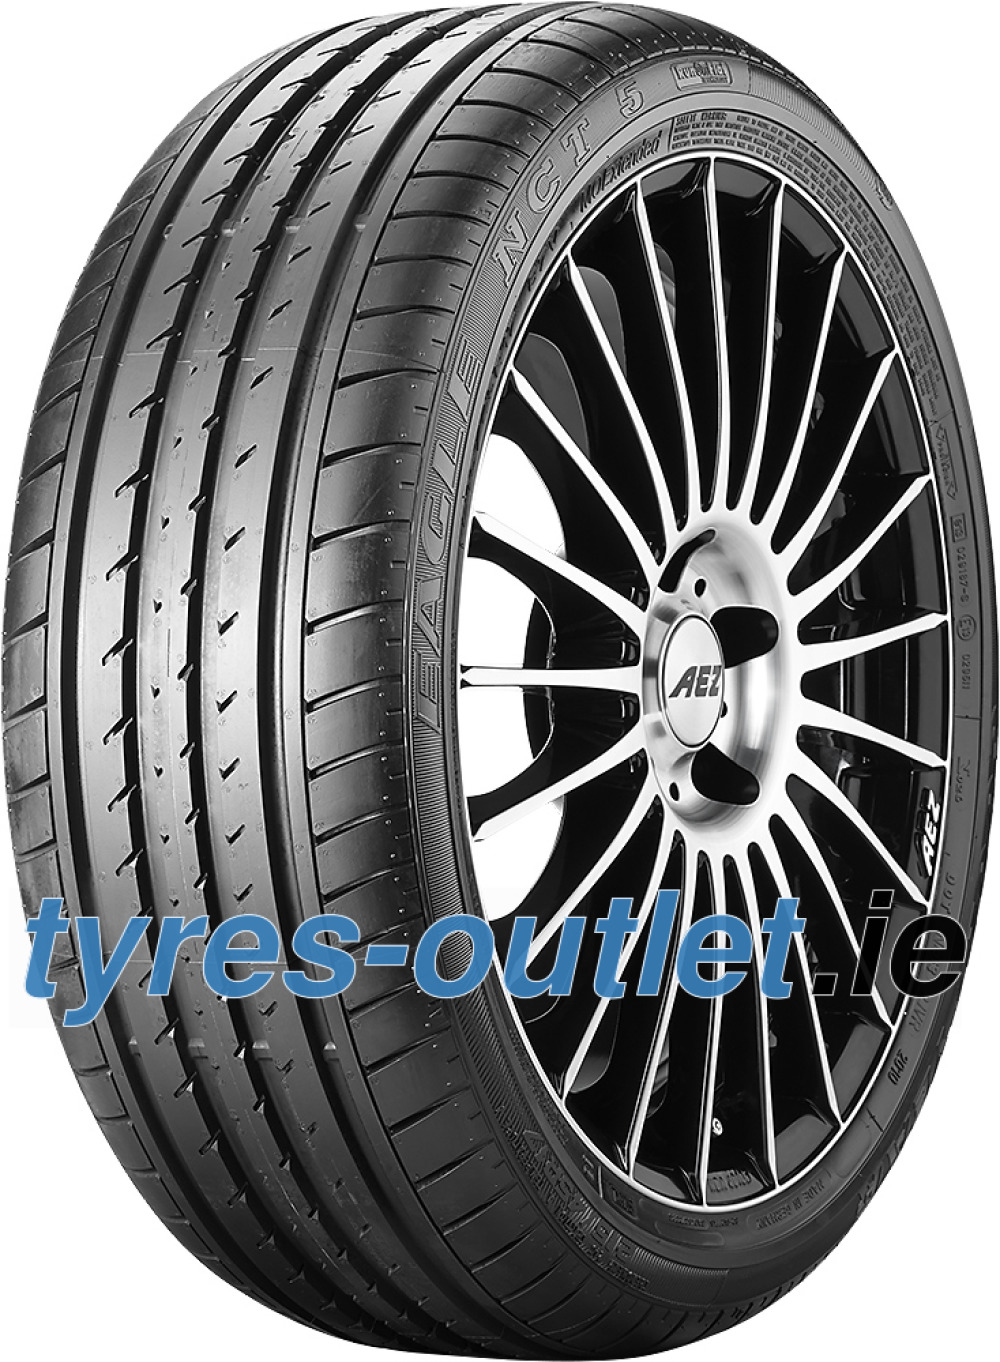 Goodyear Eagle NCT 5 ROF ( 195/55 R16 87H *, with rim protection (MFS), runflat )